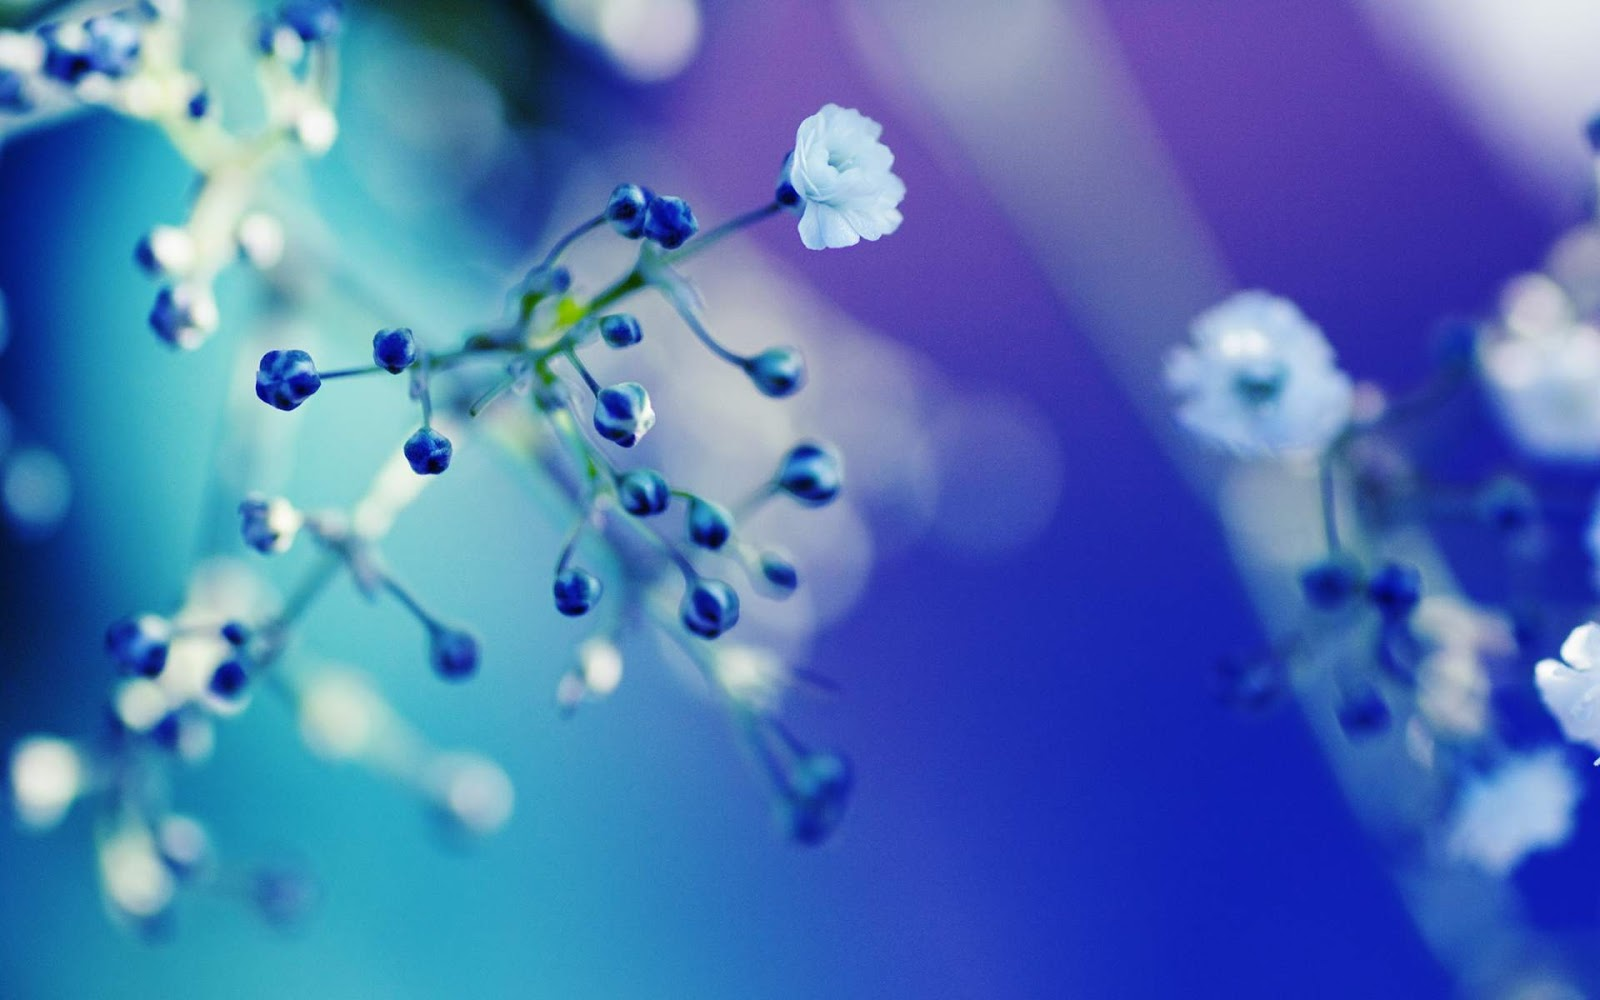 Cherry blossom white flowers branch close up hd wallpaper zoomwalls - Blue Flowers Close Up Wallpapers Cool Wallpapers